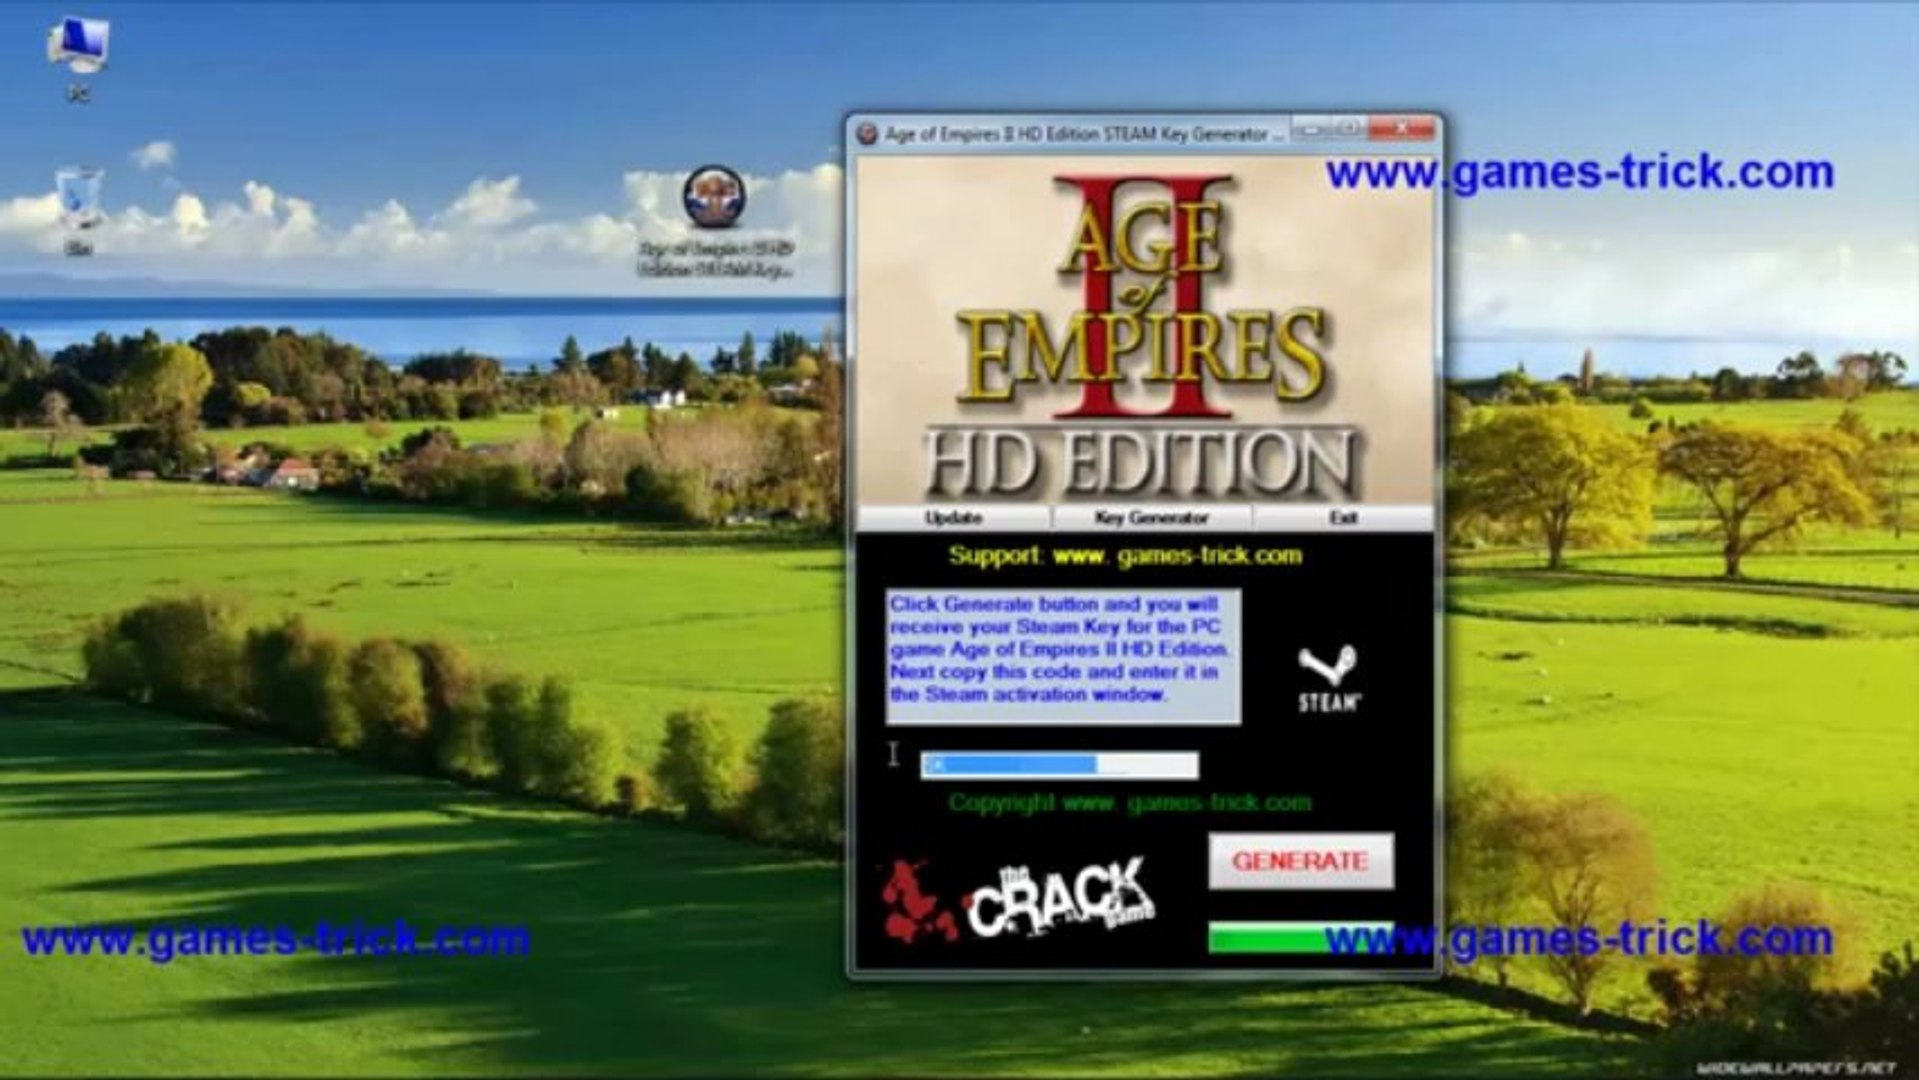 Age of Empires II HD Edition STEAM Key Generator